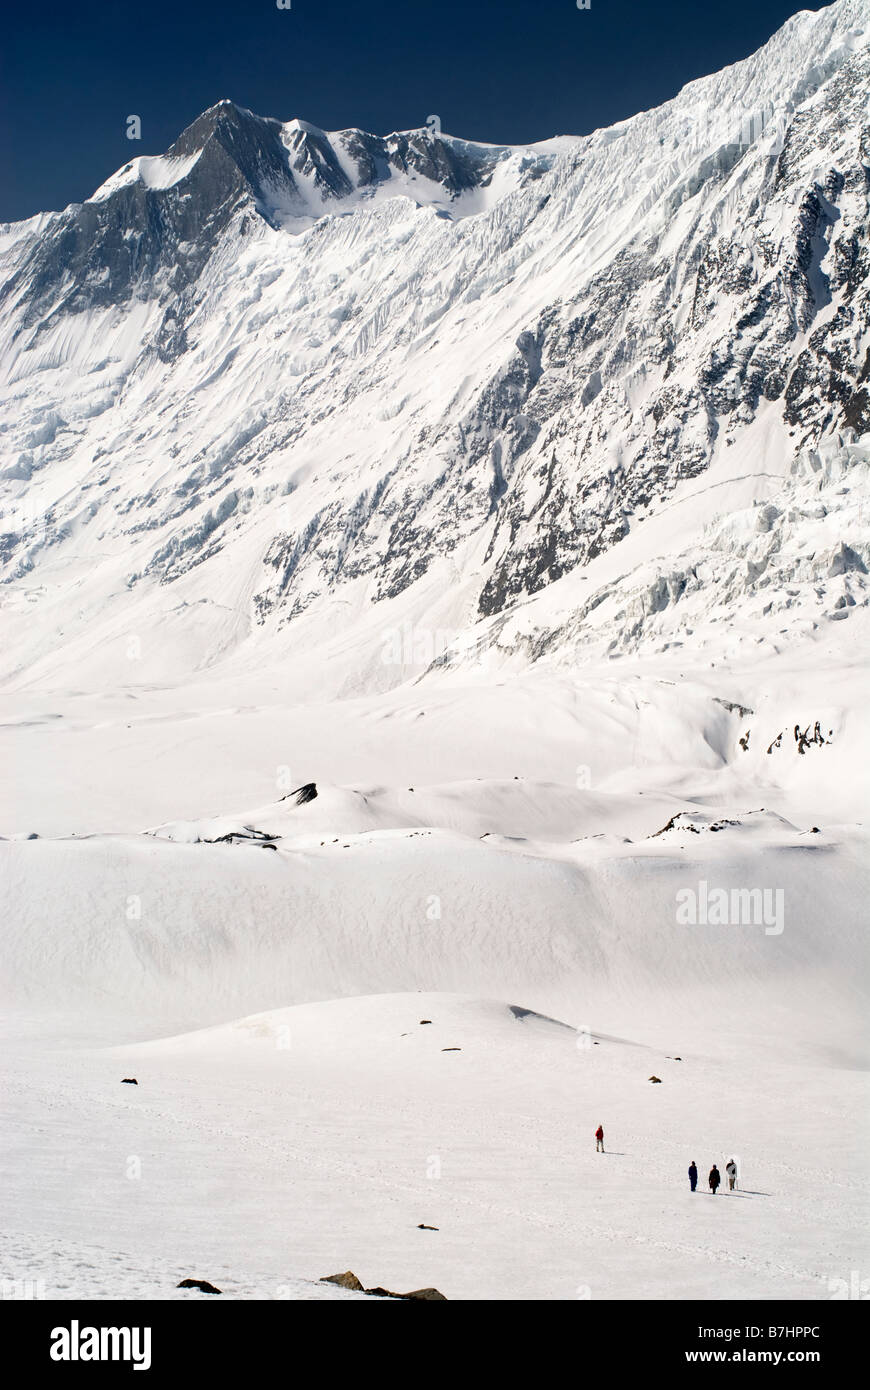 Four trekkers walk over the snow below Tilicho Peak on the approach to Tilicho Lake. Annapurna mountains, Nepal - Stock Image